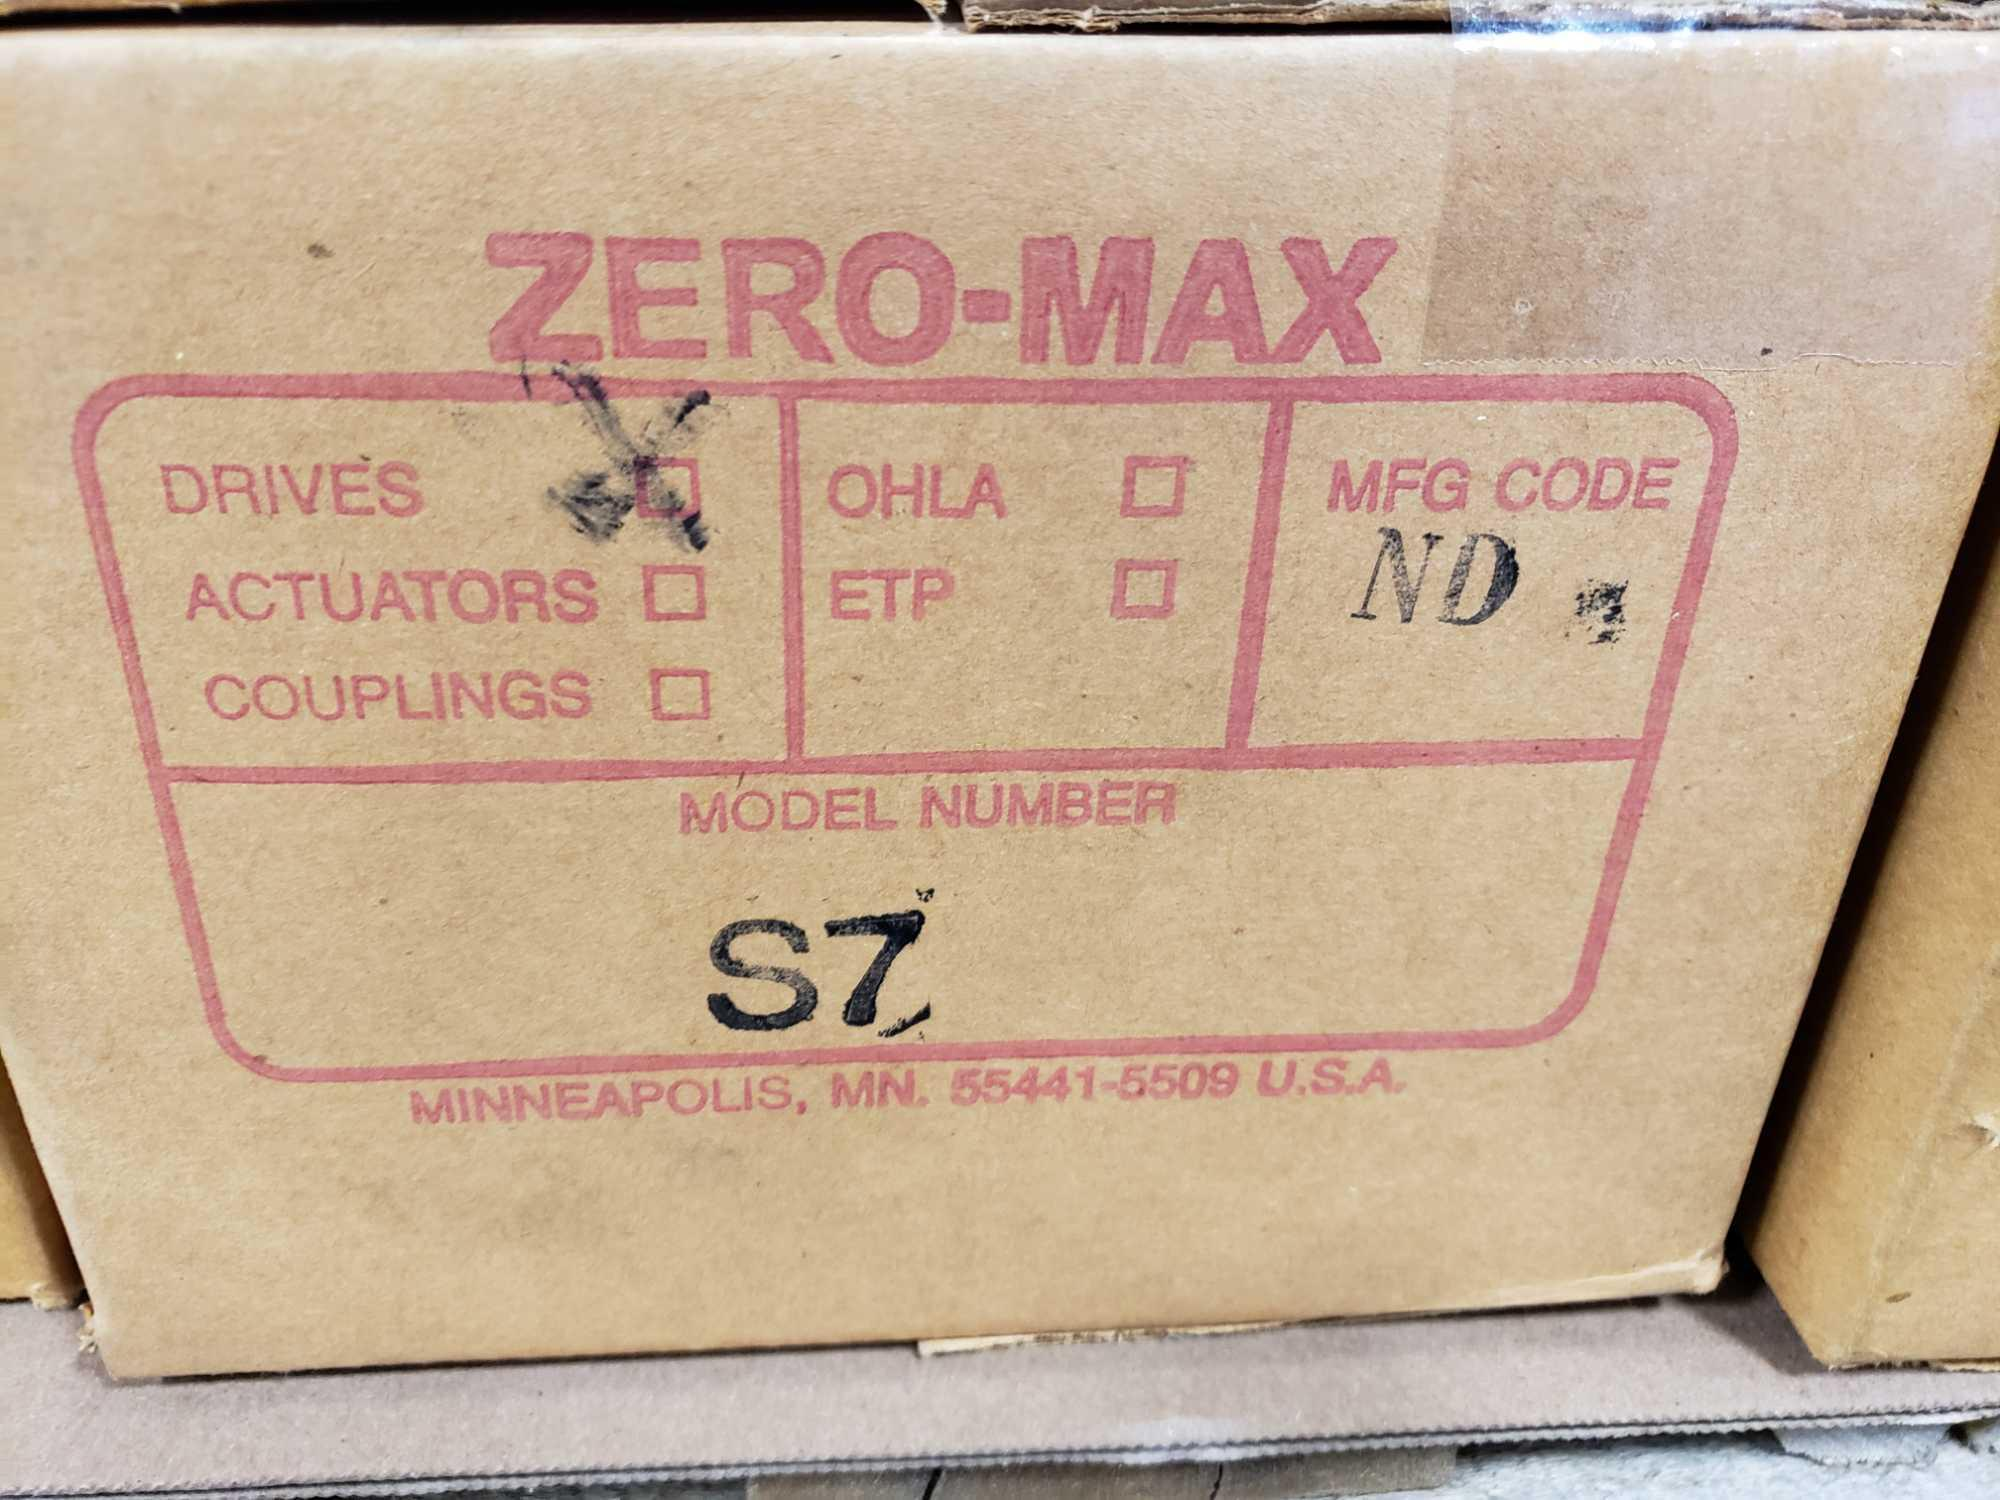 Zero-max gearhead power block model S7, 0-20 output rotation, 12lb torque, 20:1 range. New in box. - Image 3 of 3